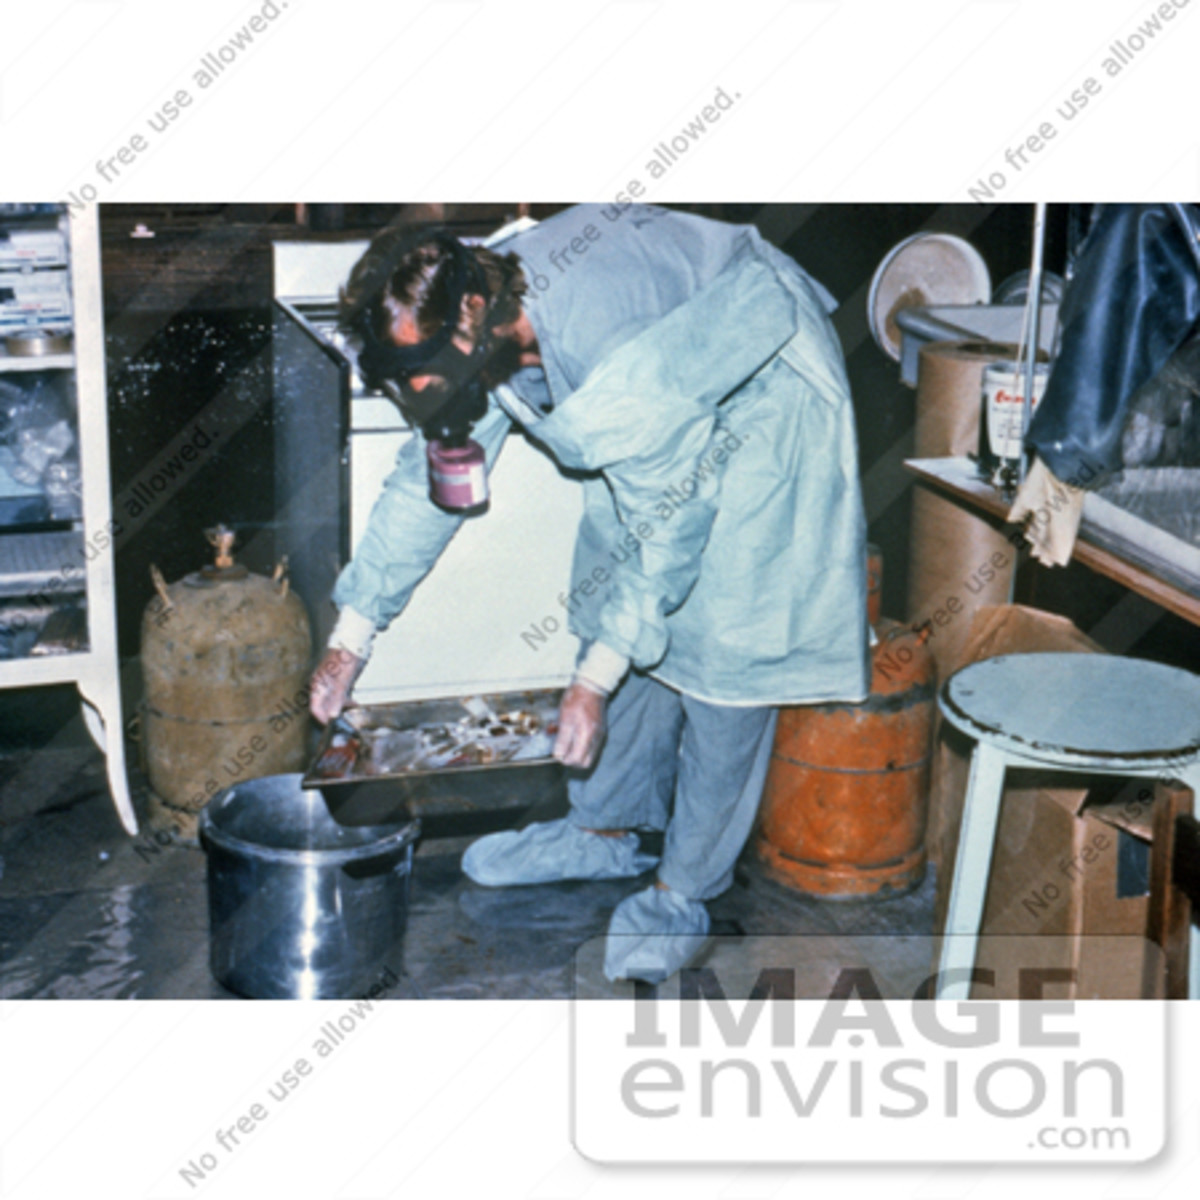 Stock photography of a heavily protected technician is shown discarding blood specimens collected during the Ebola outbreak in Zaire, 1976. Researchers hurried to identify the cause of this epidemic, pinpoint its source, and halt its spread. The dise